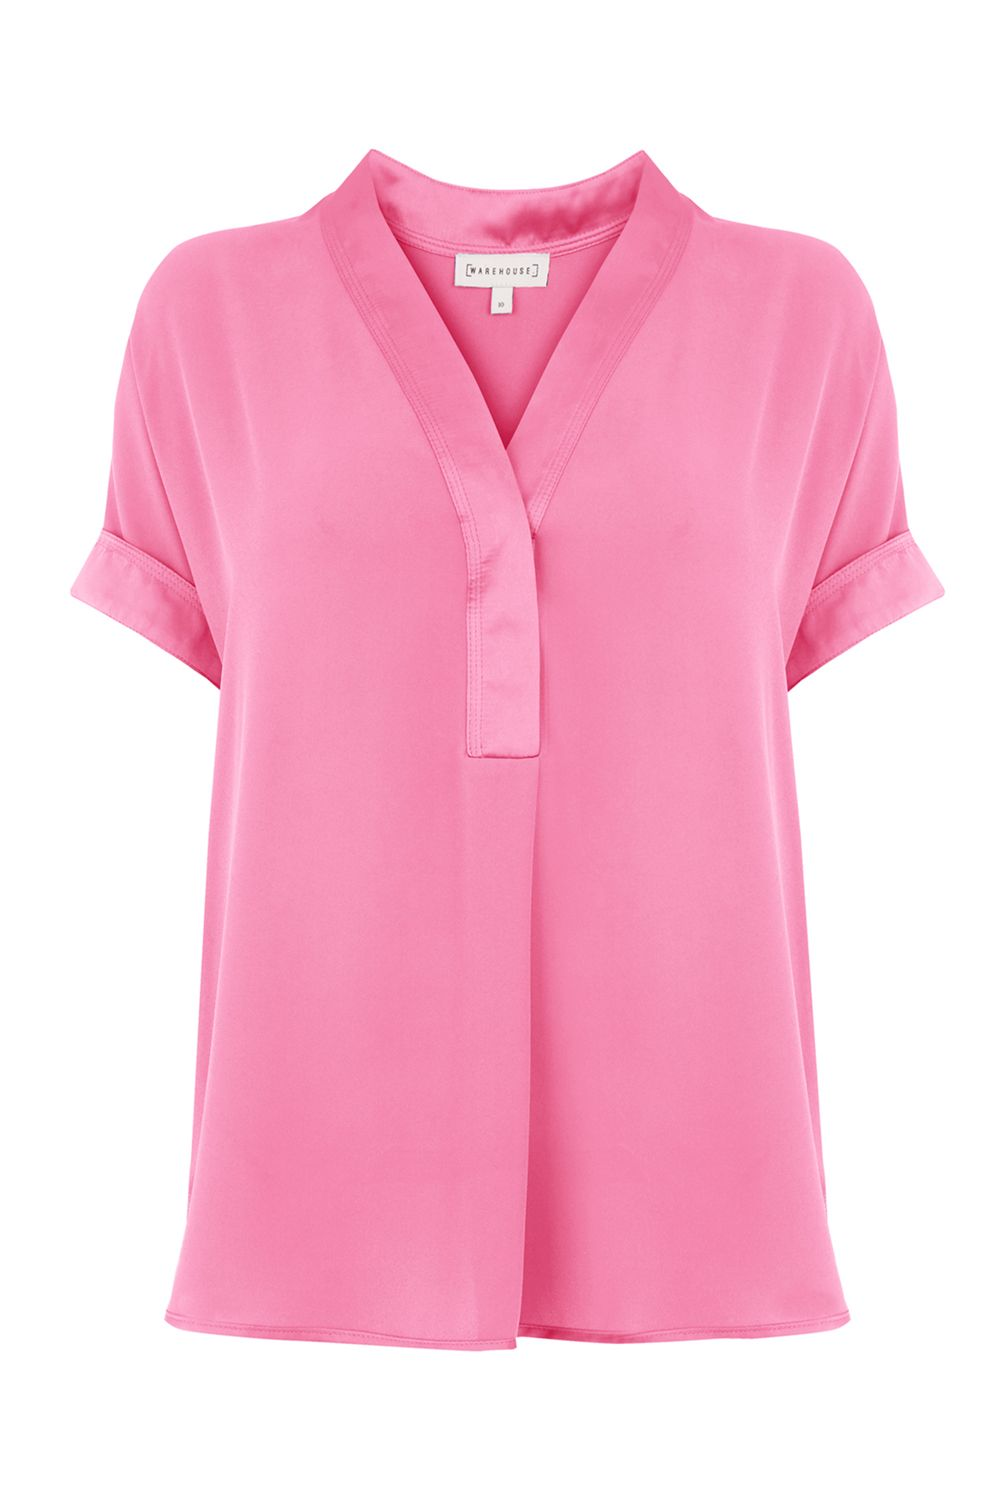 Warehouse Satin Mix Blouse, Pink